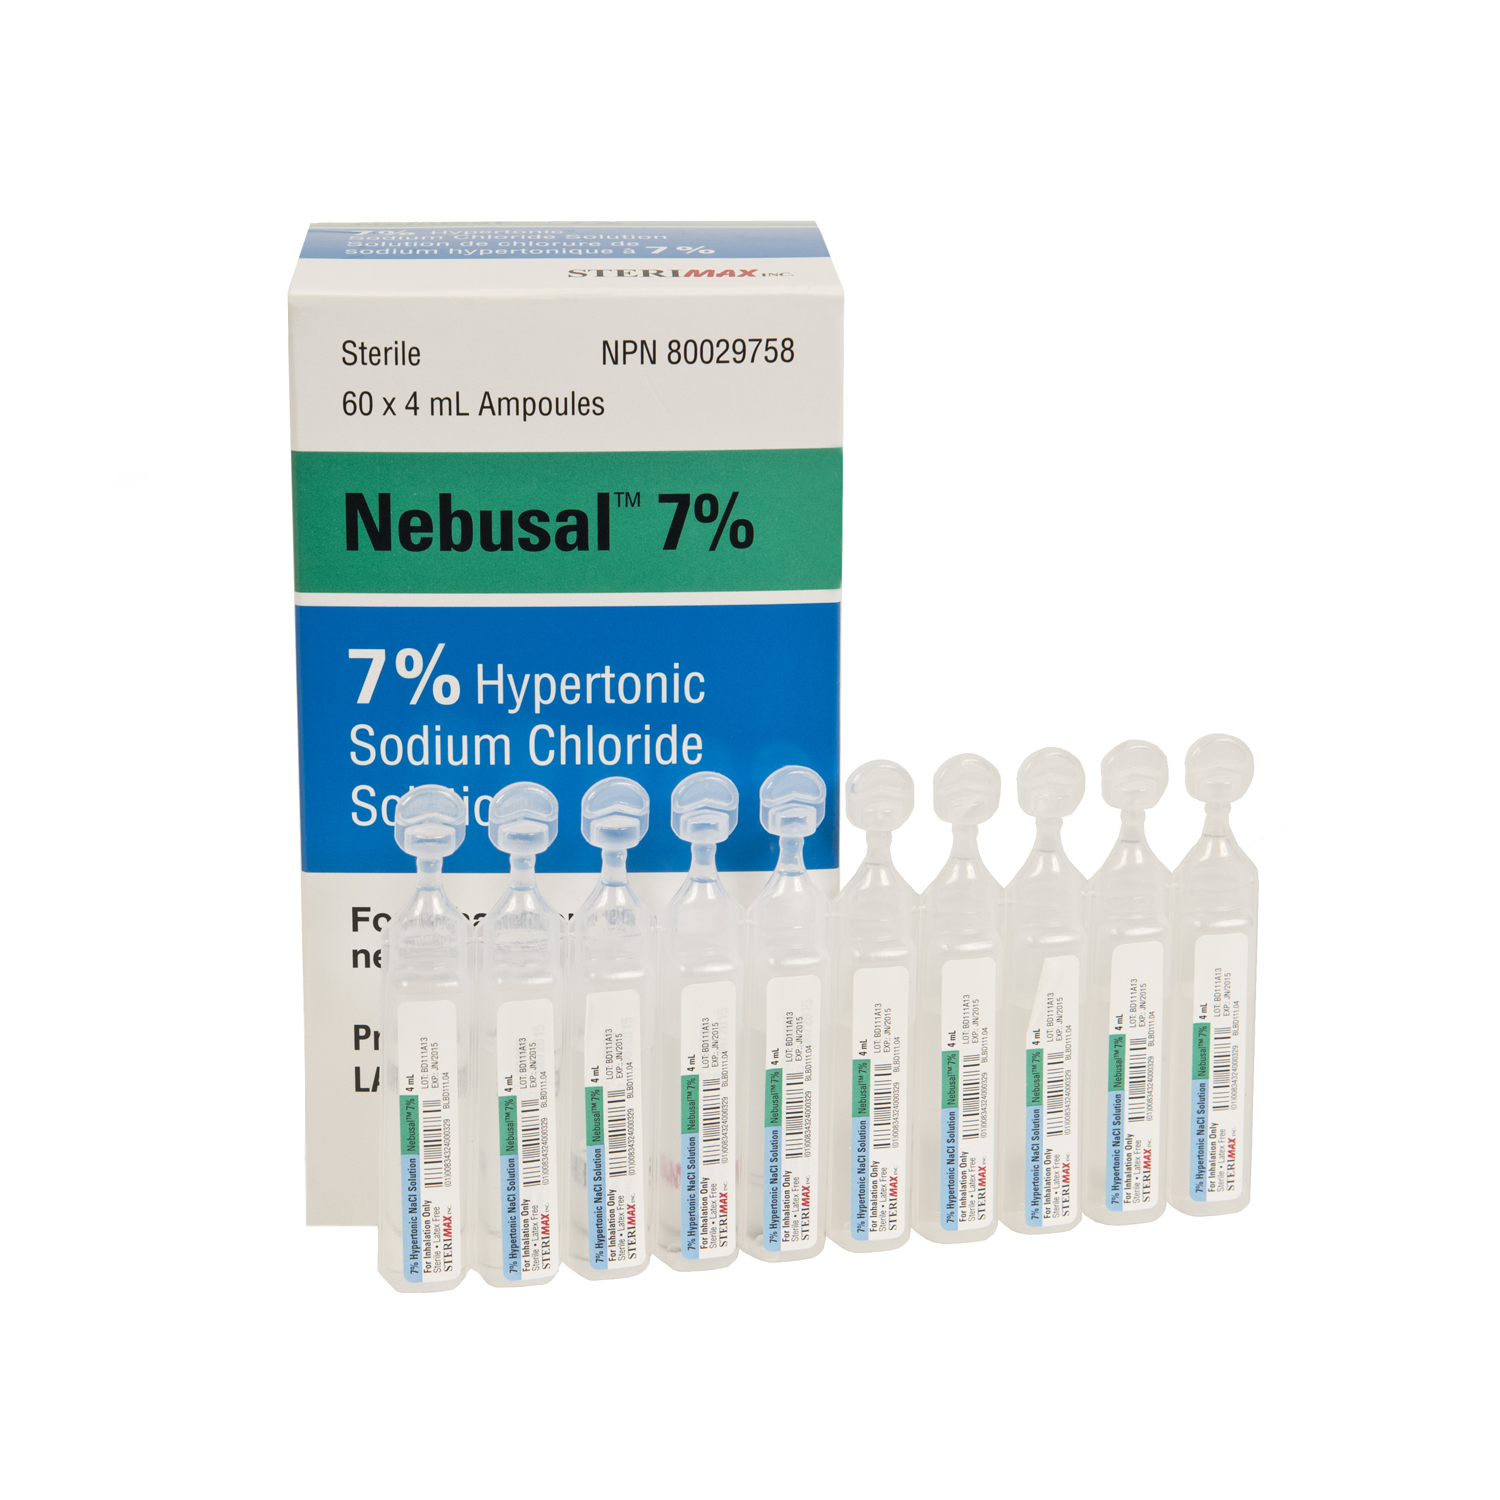 kenacort injection price